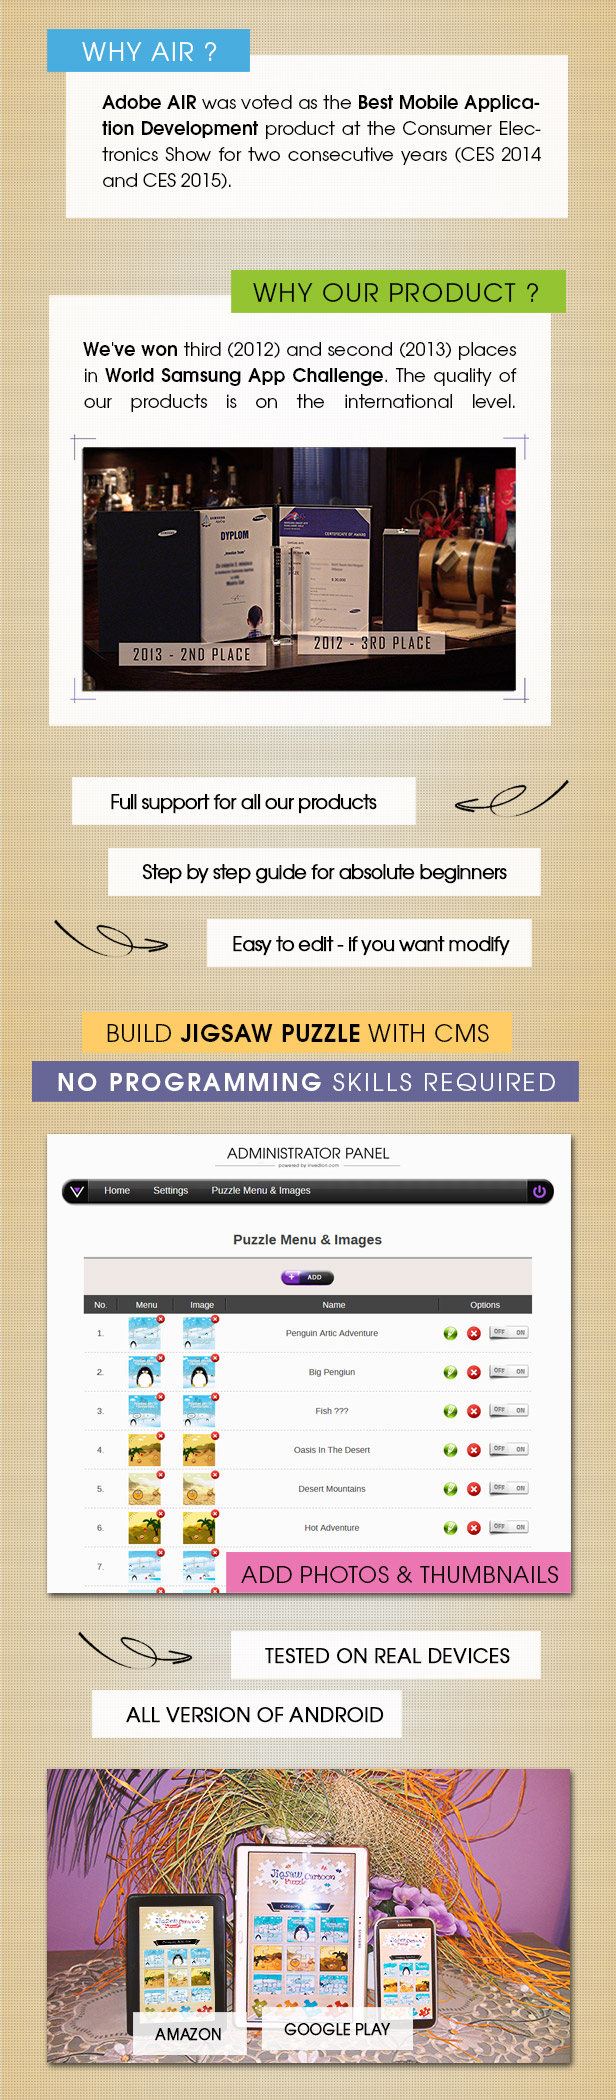 Jigsaw Cartoon Puzzle With CMS & AdMob - Android - 3